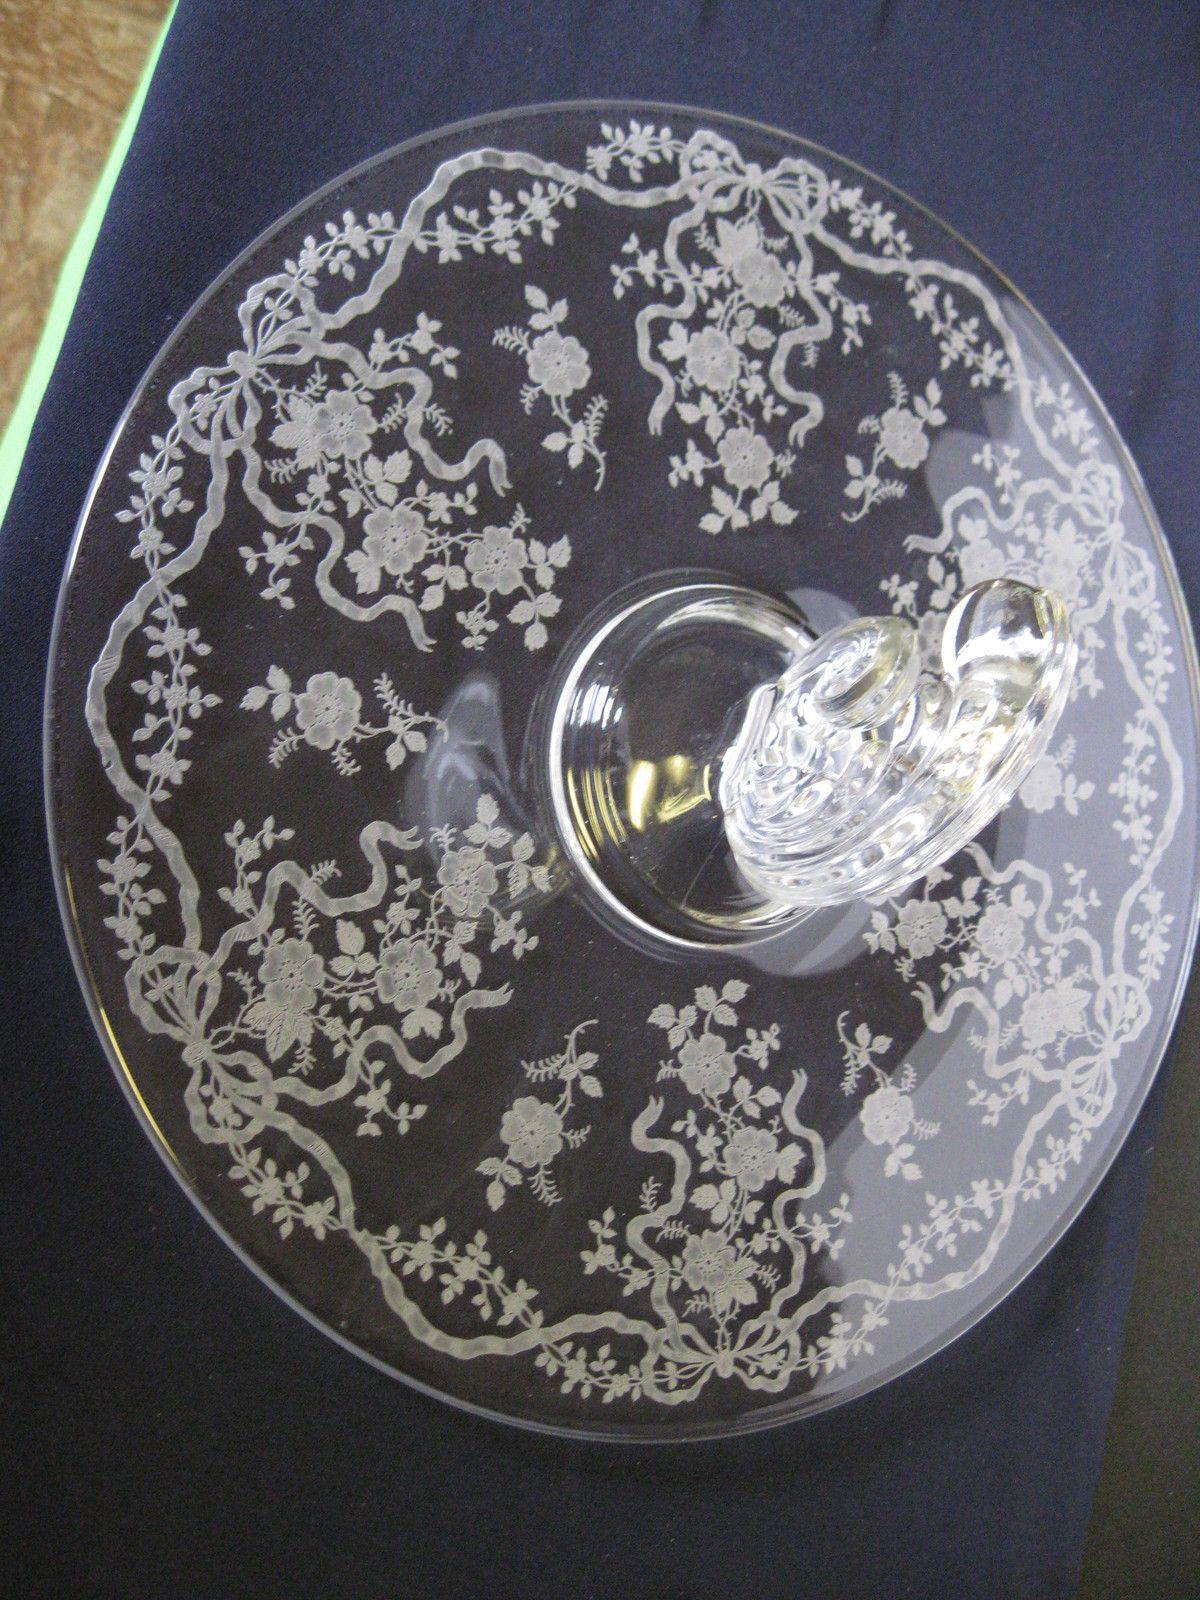 Chic and Elegant Gift Etched Glassware Vintage Round Glass Serving Platter Great Condition